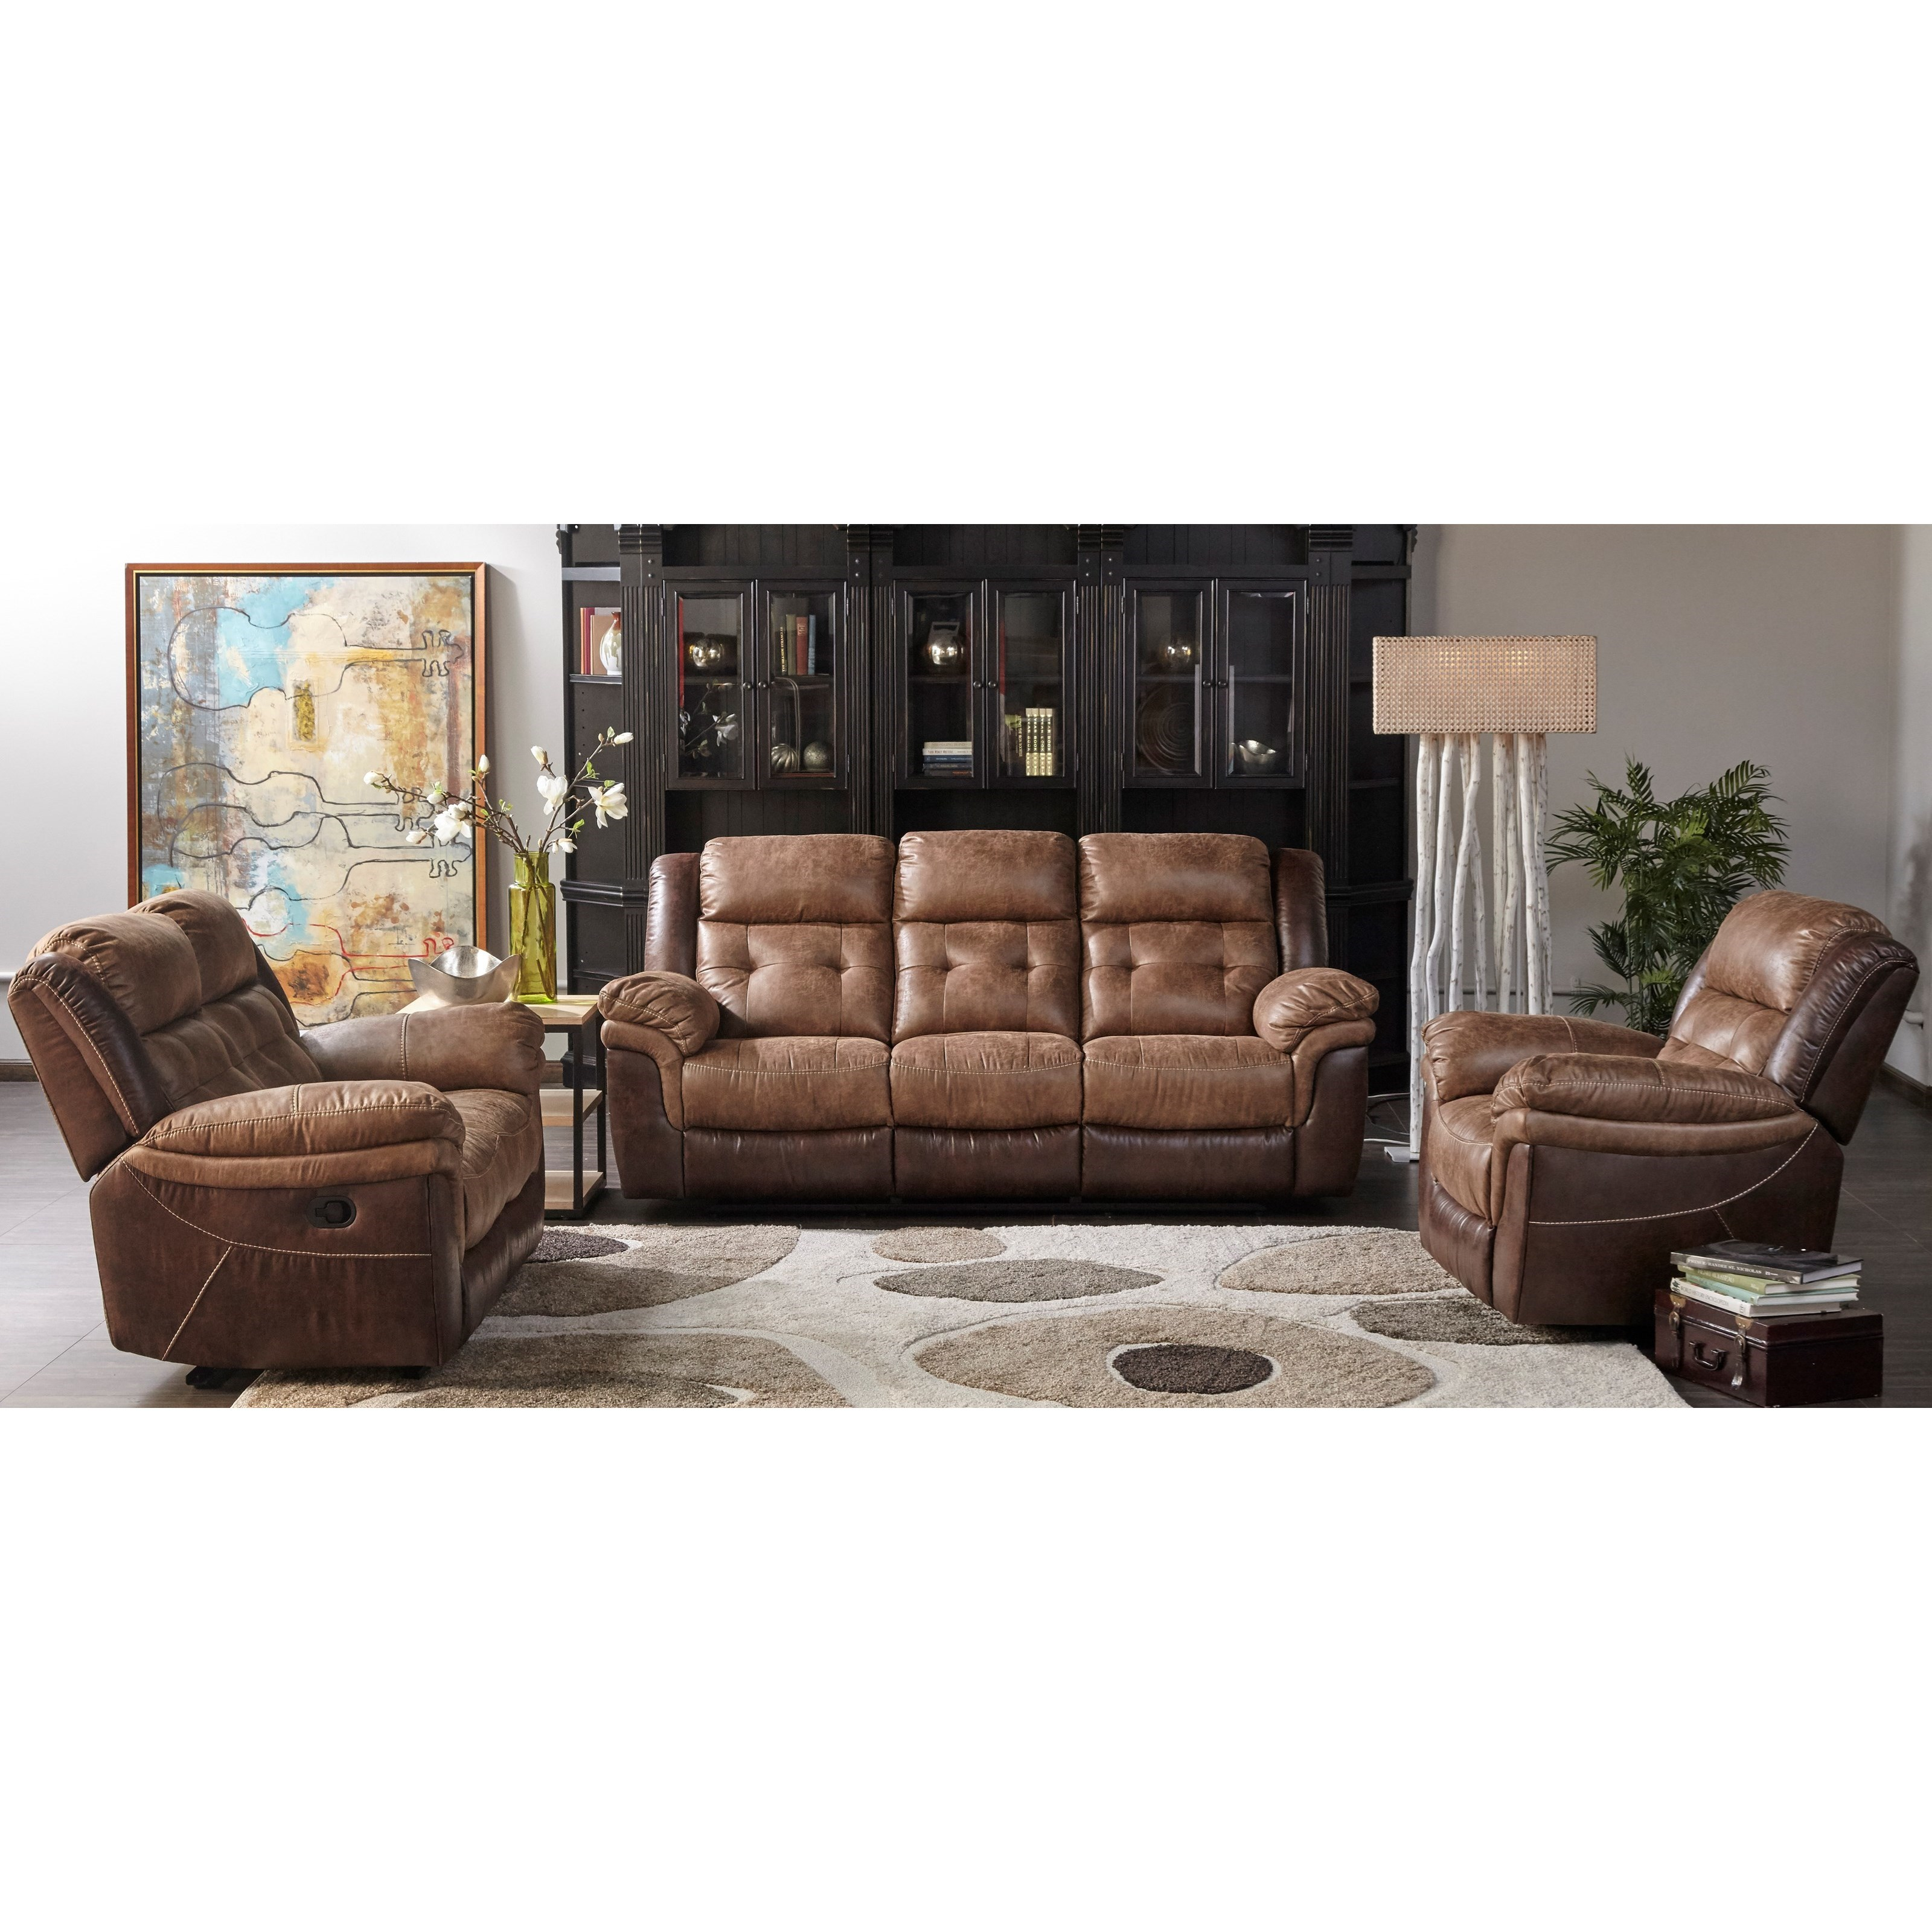 XW5156M Living Room Group by VFM Signature at Virginia Furniture Market